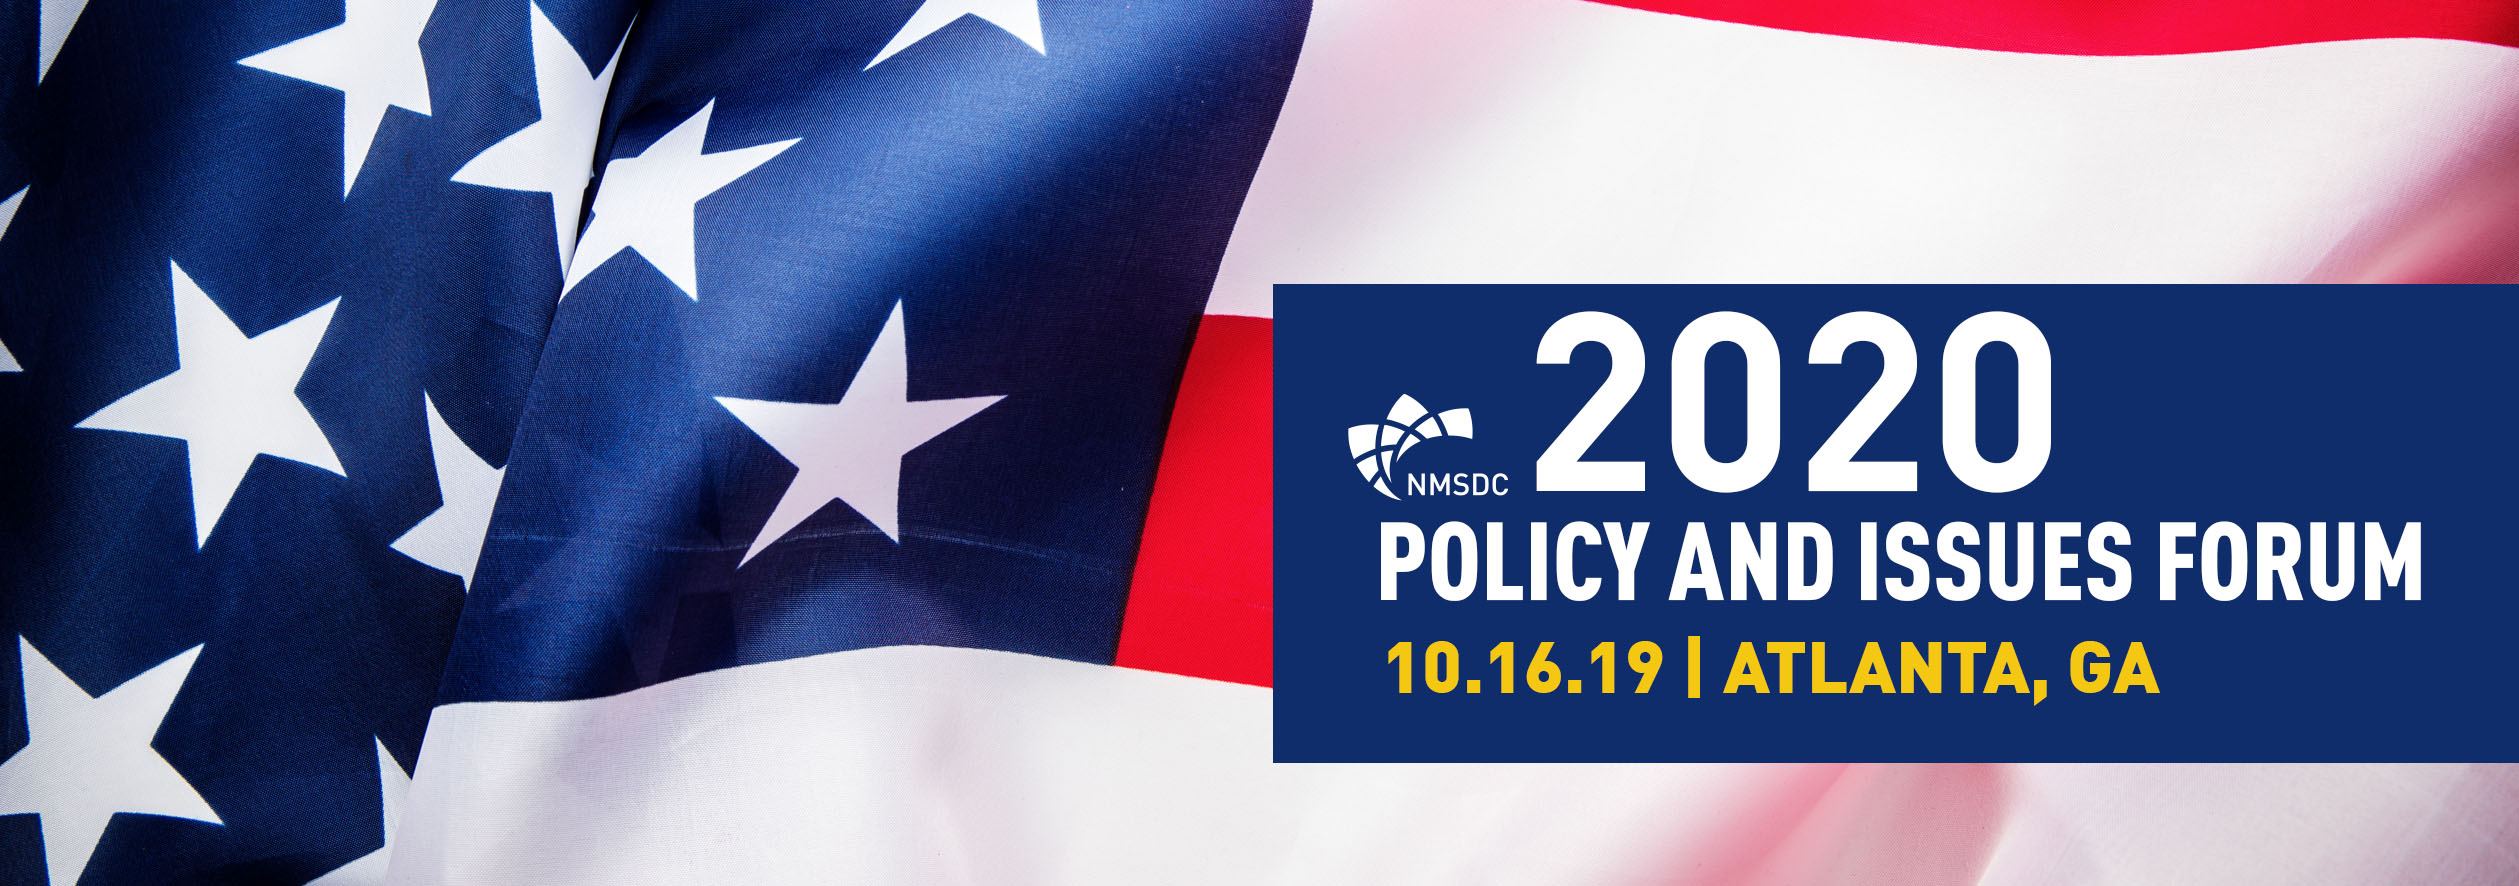 NMSDC 2020 Policy and Issues Forum